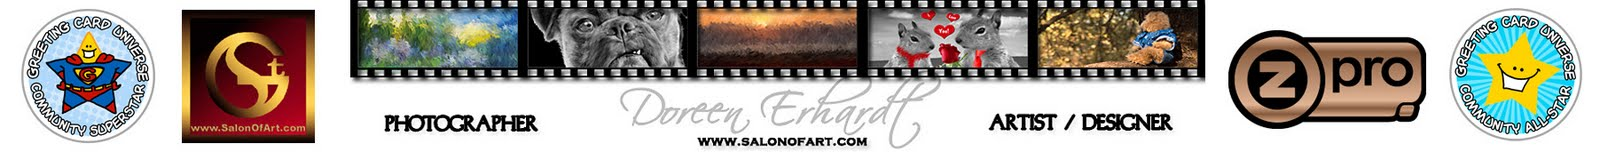 Salon of Art Greetings